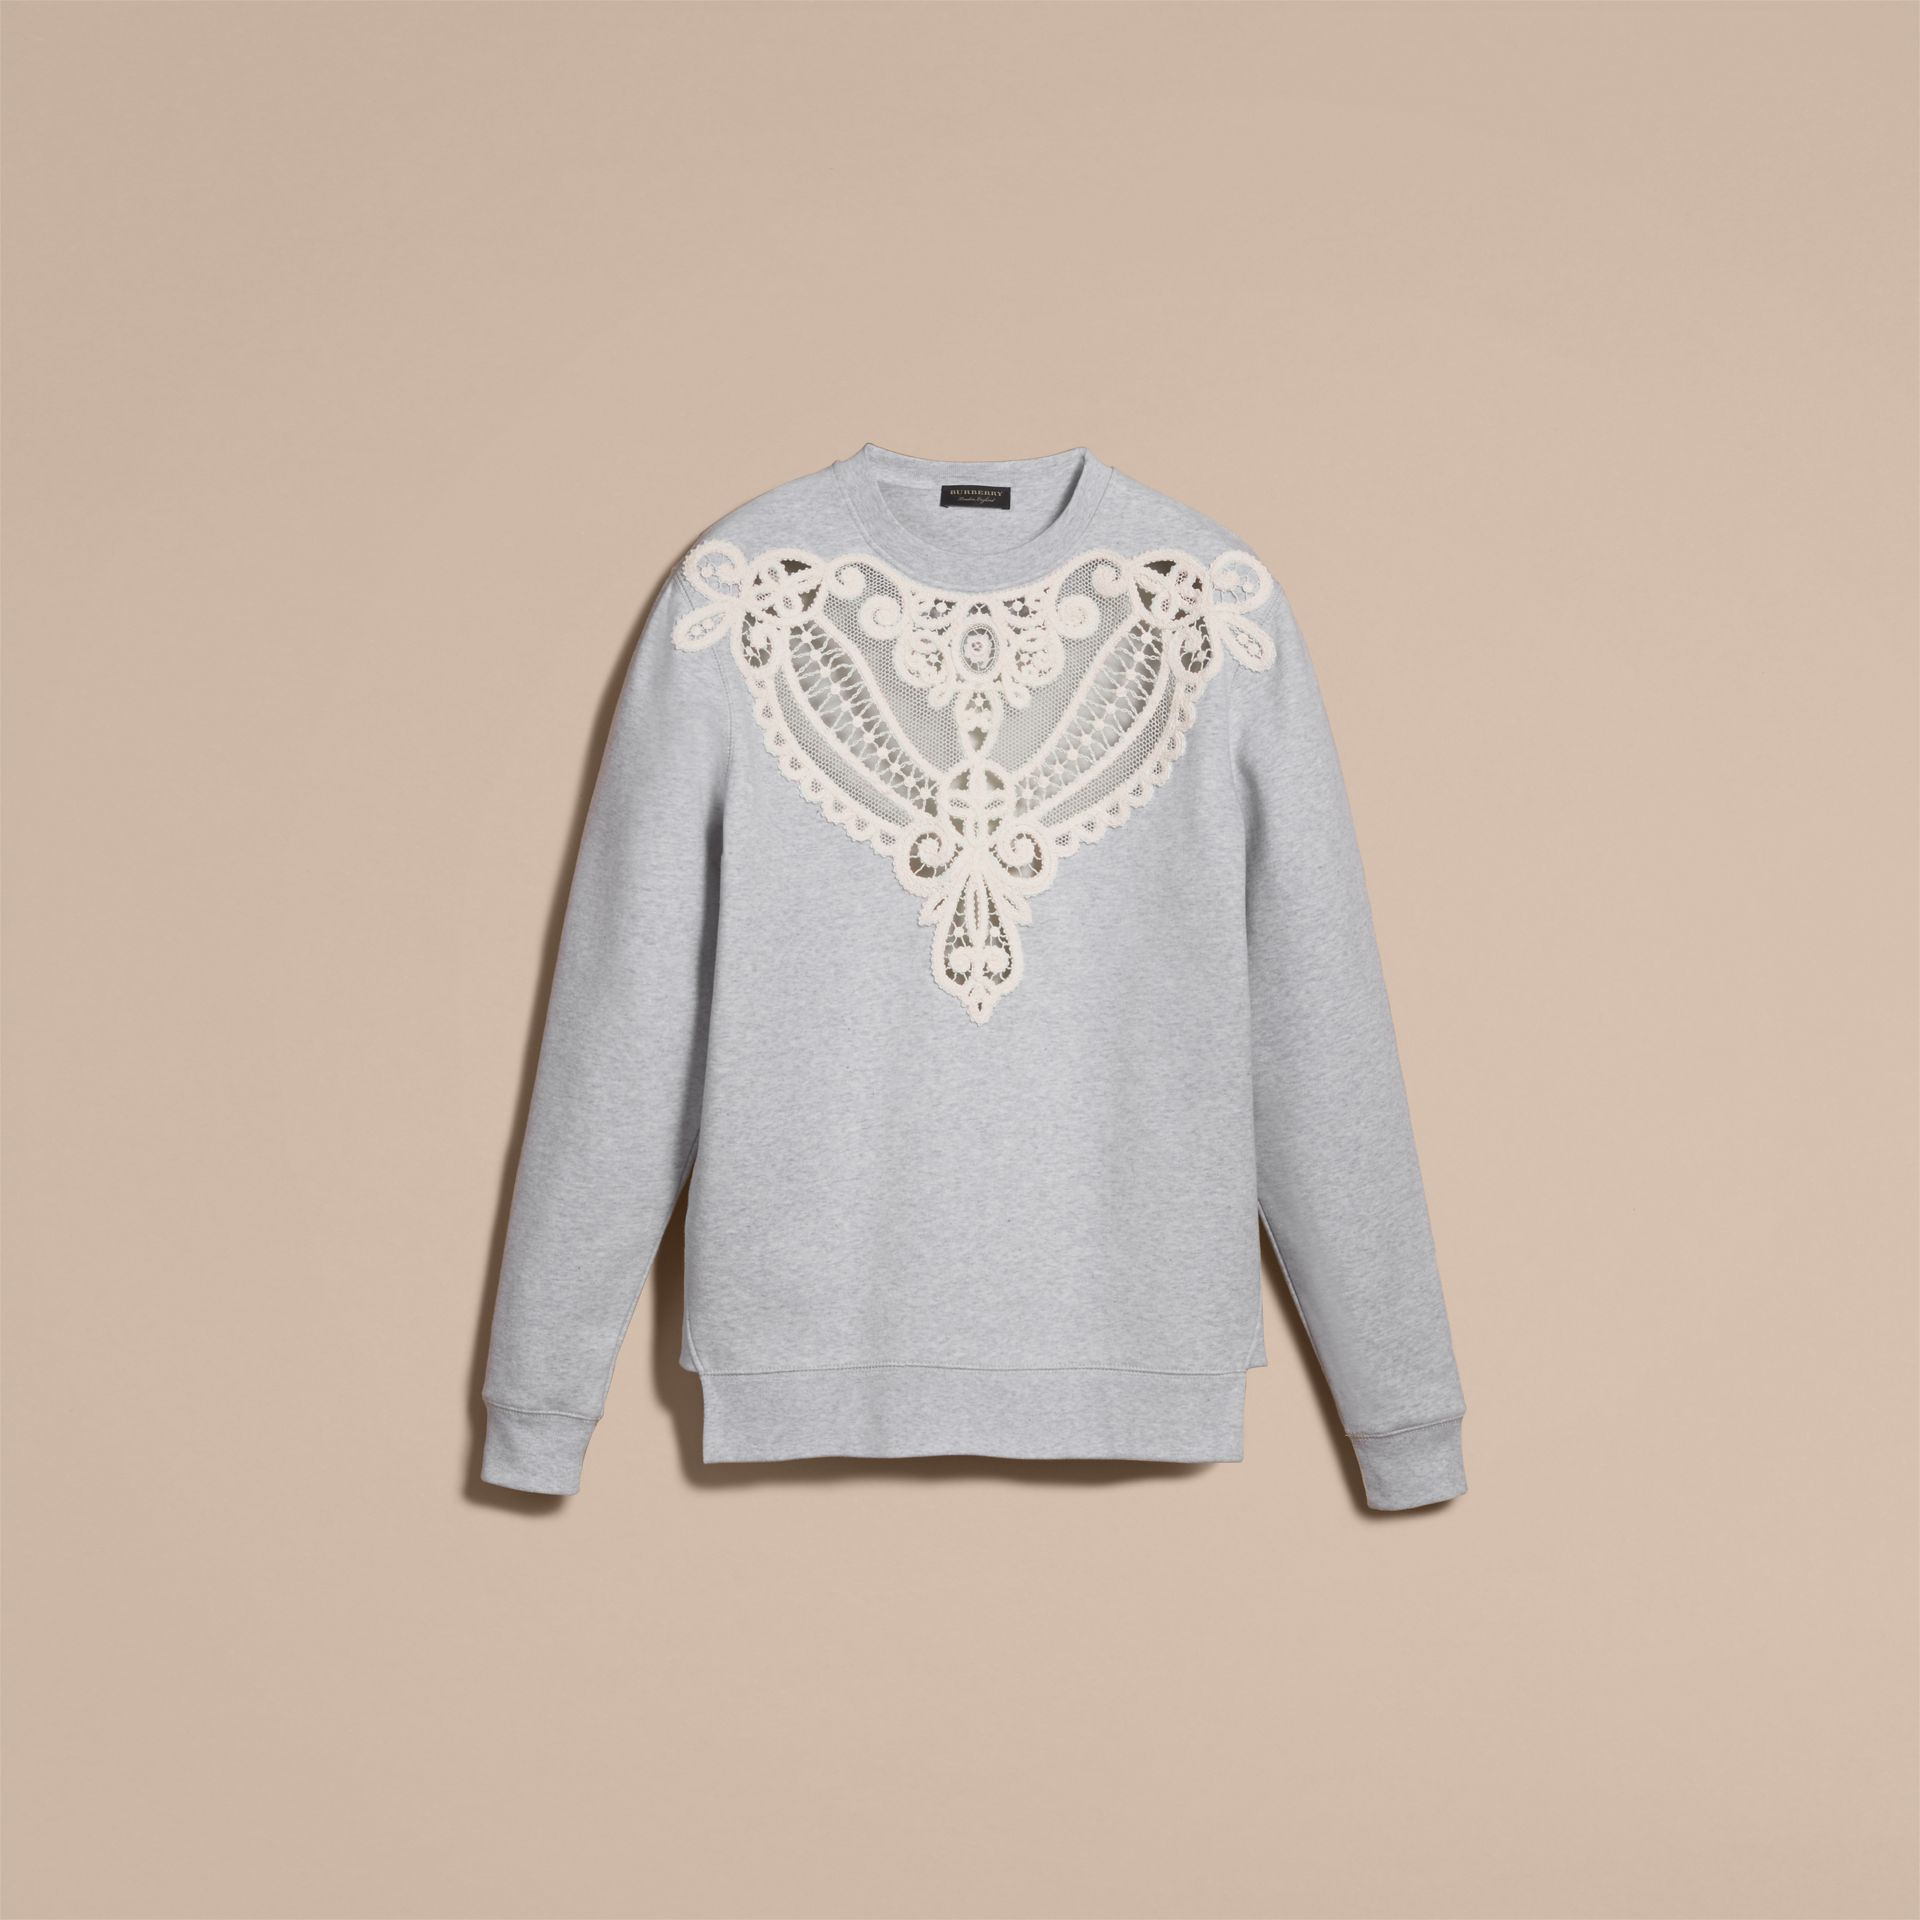 Unisex Lace Cutwork Sweatshirt in Light Grey Melange - Women | Burberry Singapore - gallery image 4